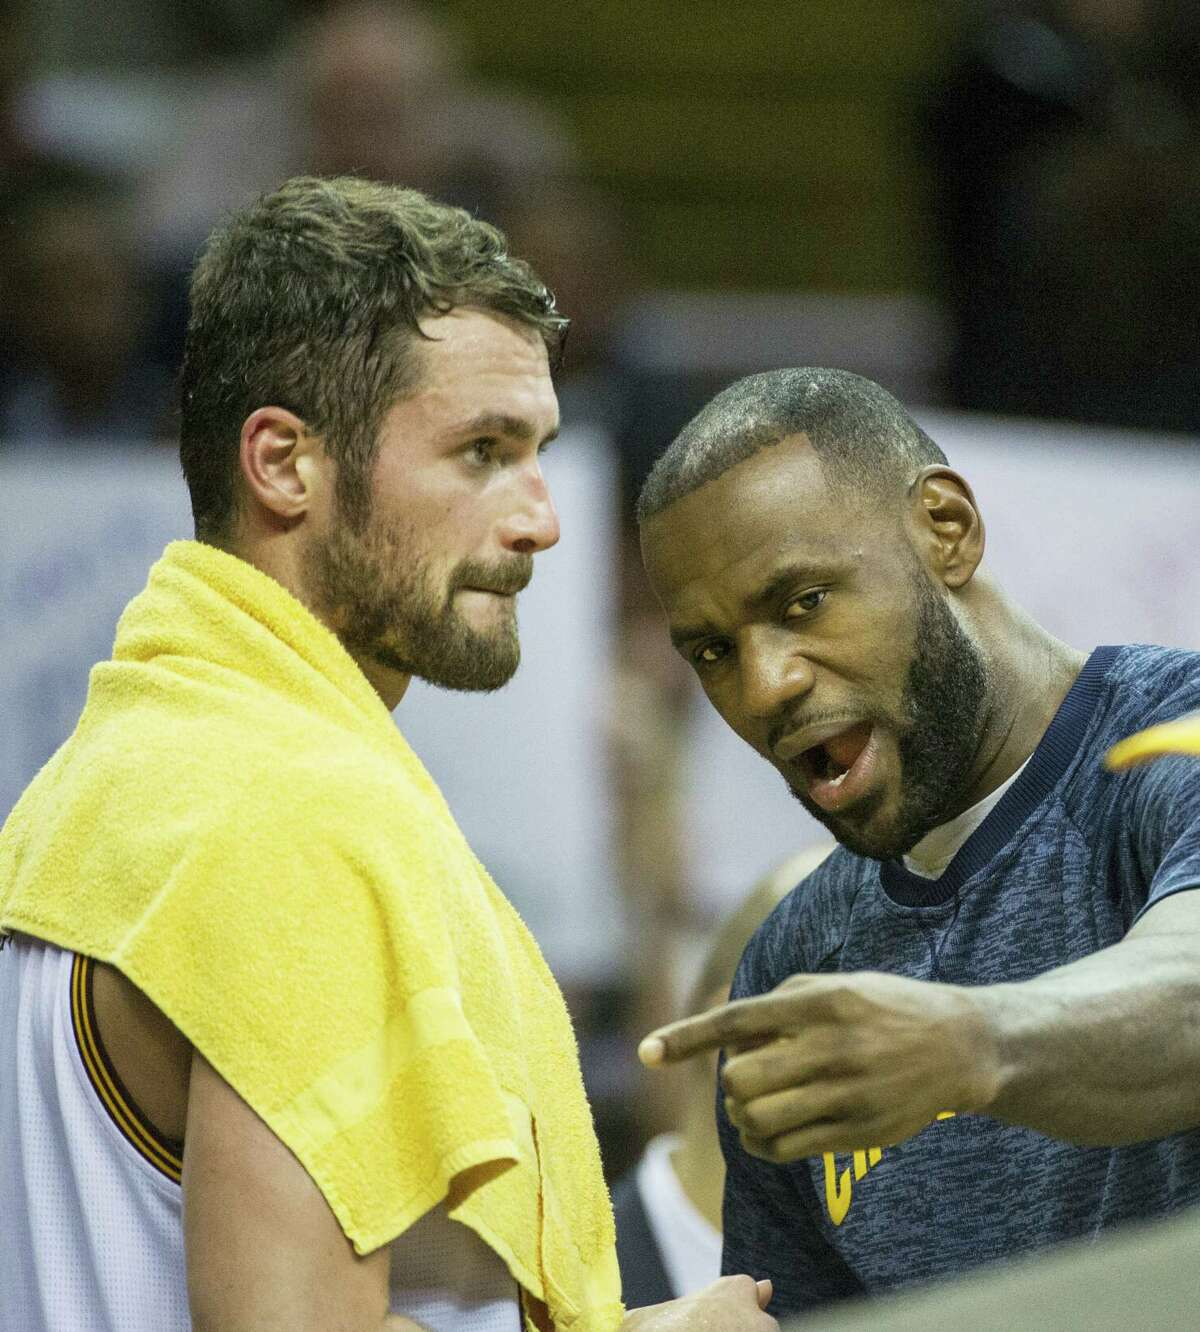 Cleveland Cavaliers' Kevin Love (0) listens to LeBron James during a time out during the first half of an NBA preseason basketball game in Cleveland on Oct. 13, 2016.